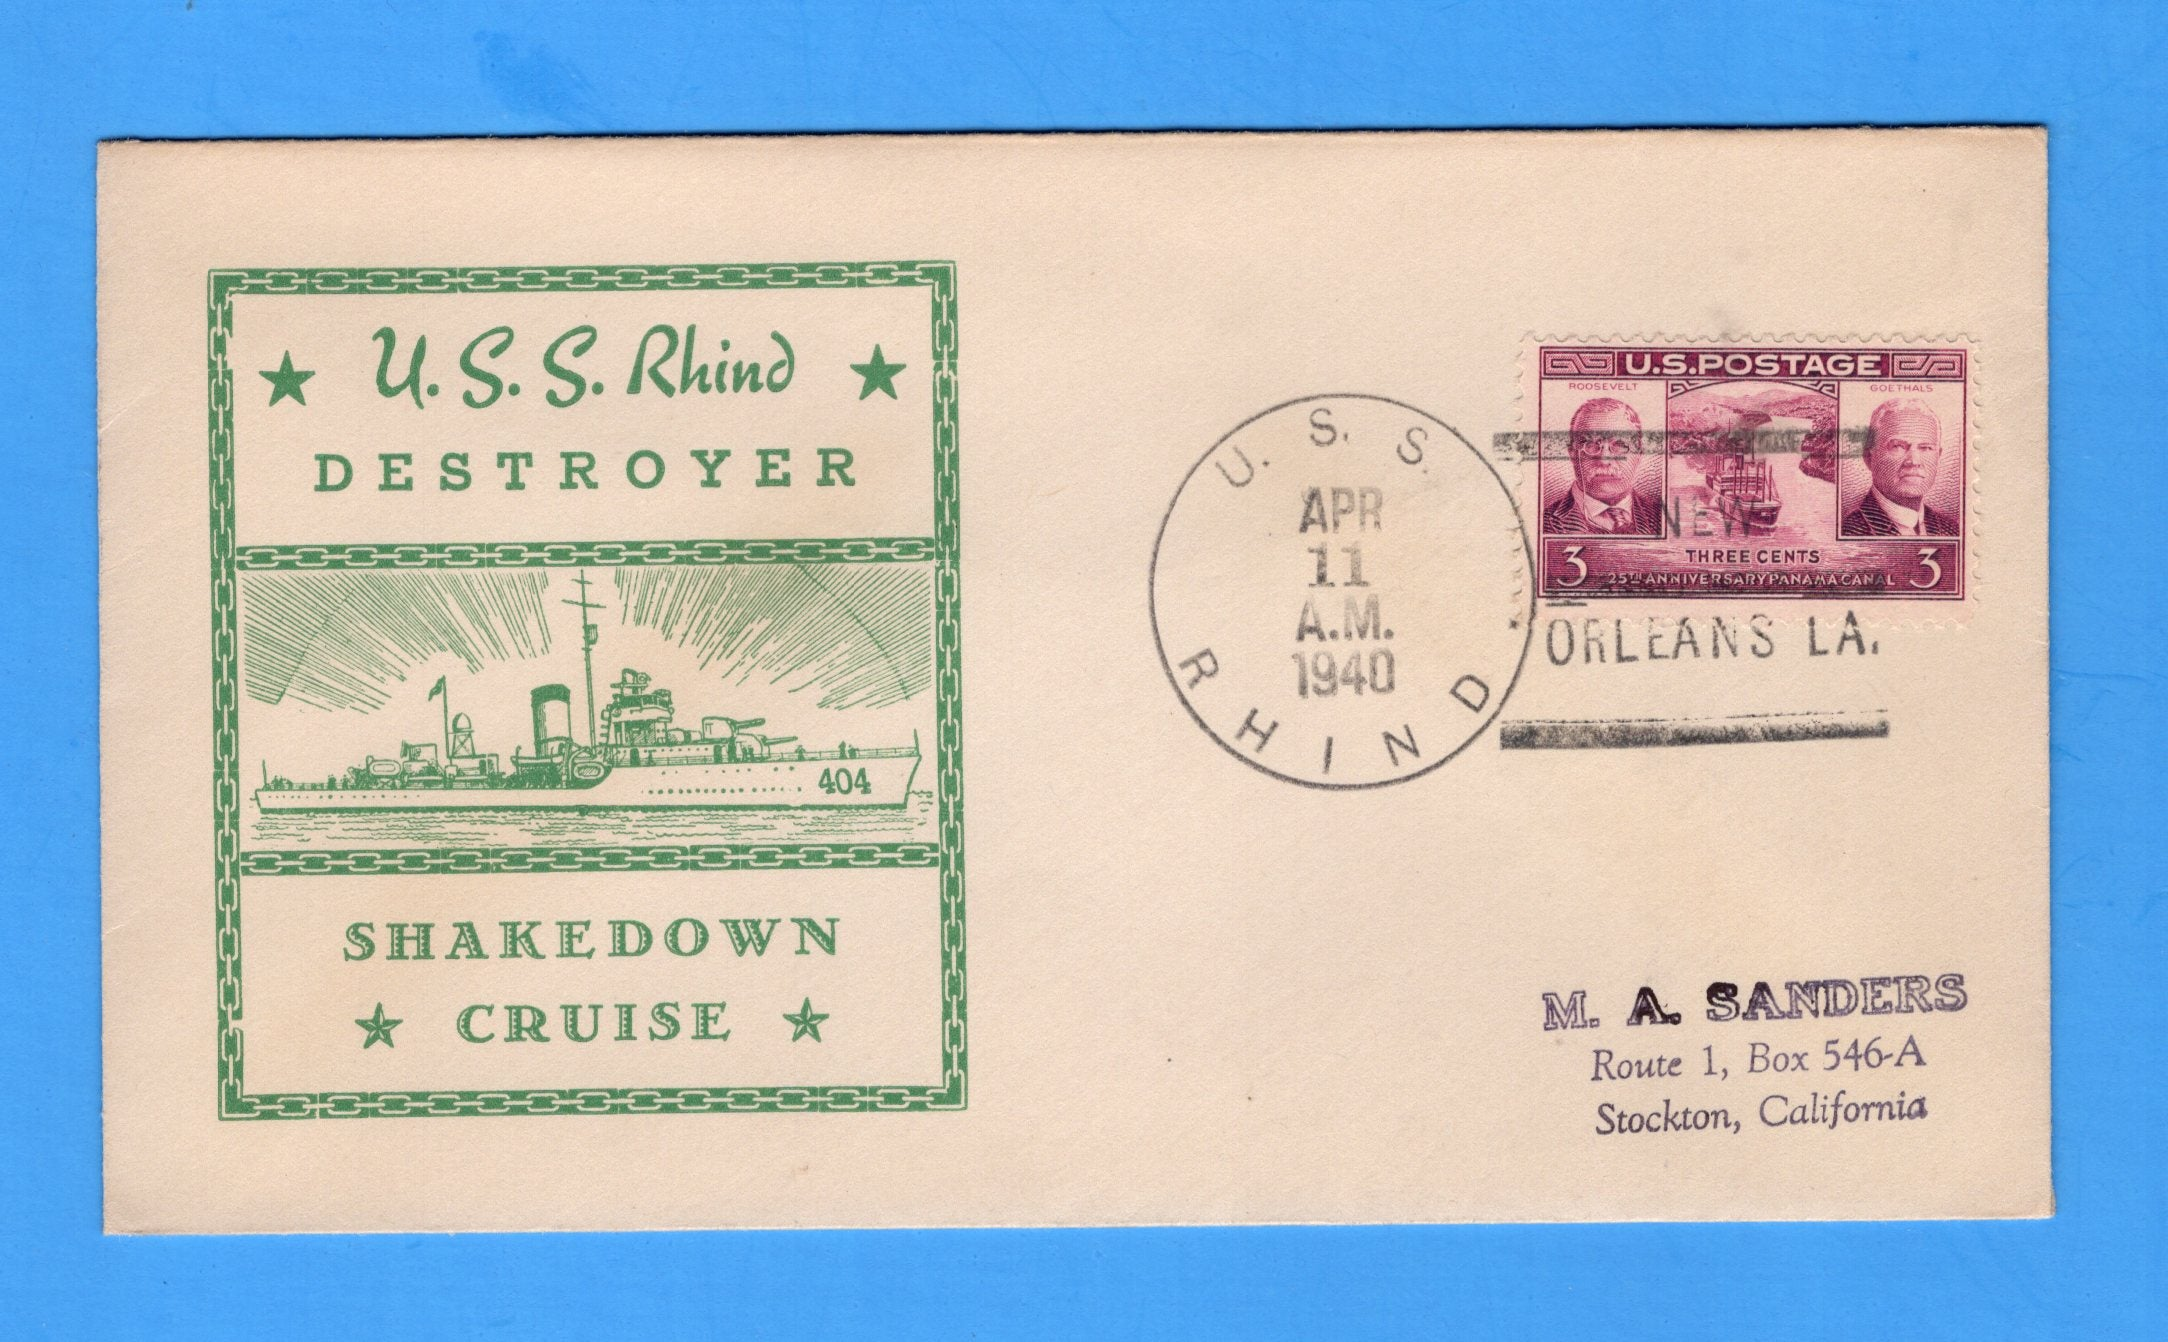 USS Rhind DD-404 Shakedown Cruise New Orleans April 11, 1940